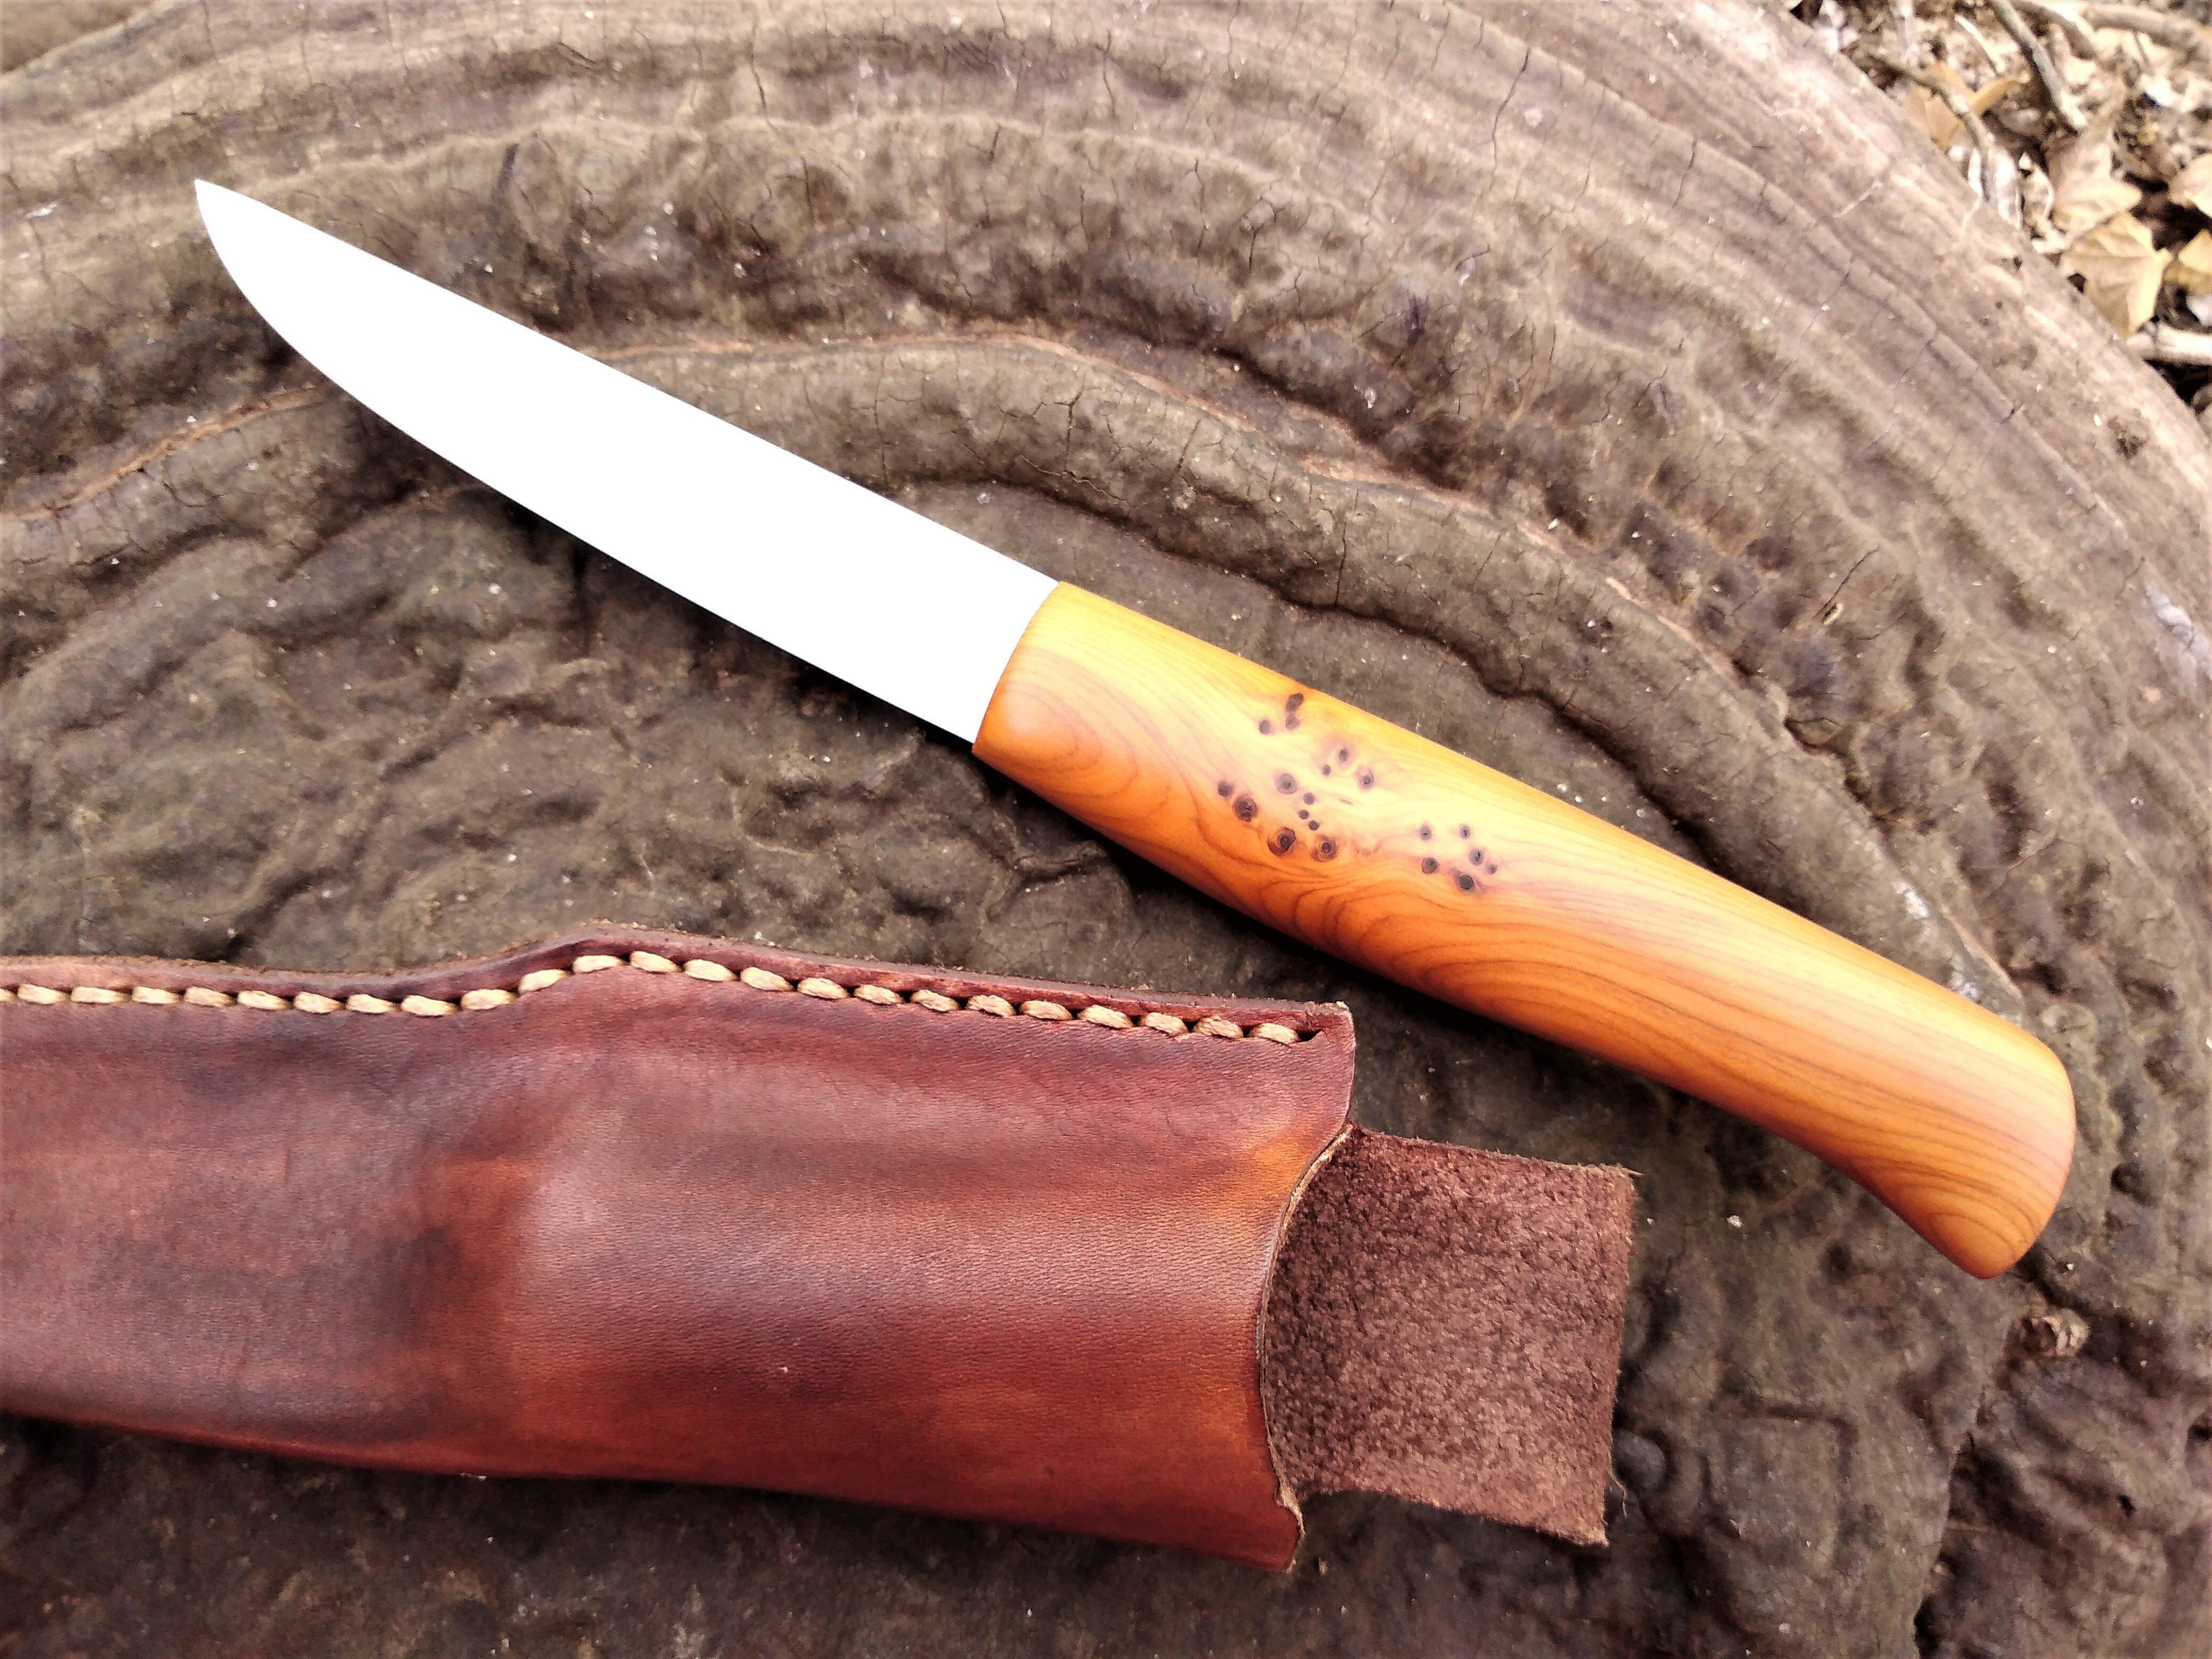 Yew Puukko Vknives In 2020 Leather Sheath High Carbon Steel Handmade Knives